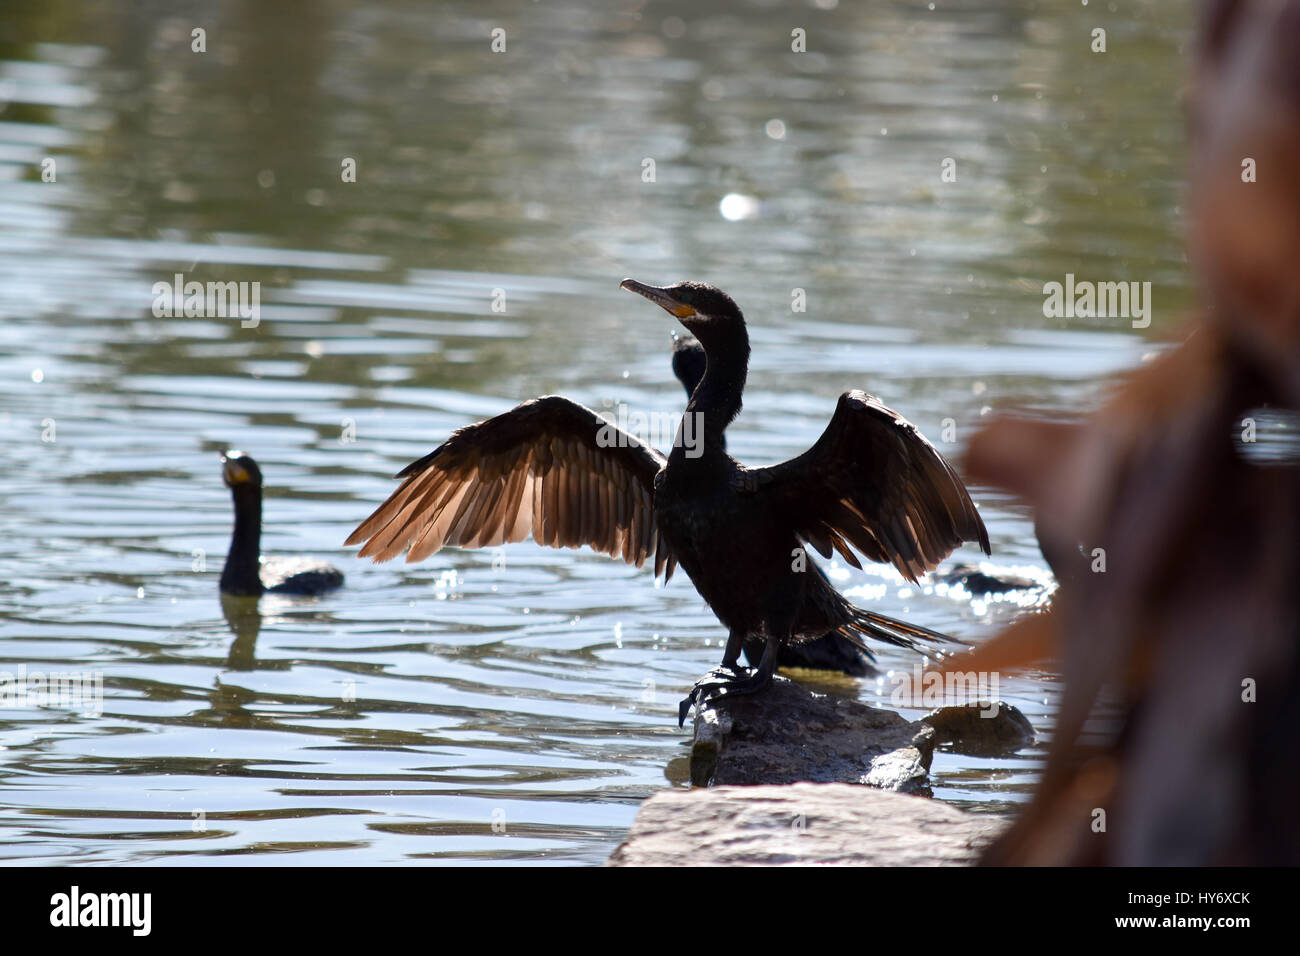 duck airs out wings - Stock Image